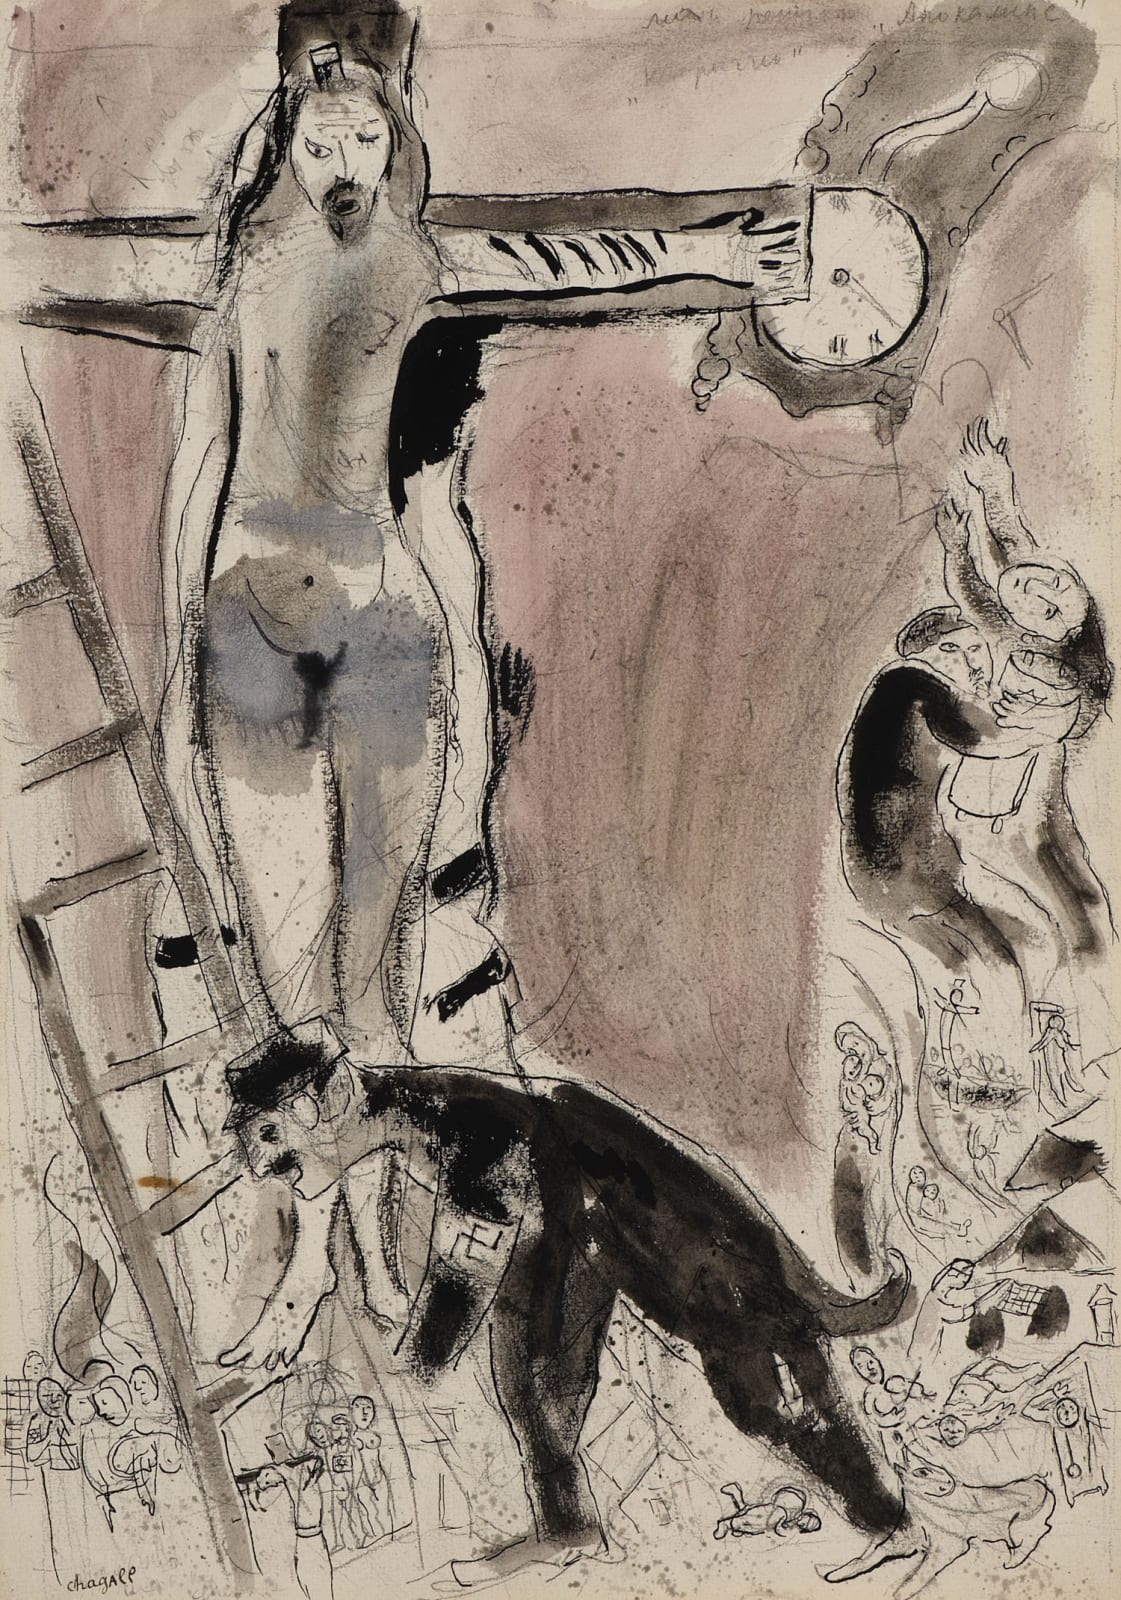 Marc Chagall (1887-1985) Apocalypse en Lilas, Capriccio 1945 Gouache, pencil, indian wash ink and indian ink on paper 51.2 x 36.3 cm Ben Uri Collection © Marc Chagall estate To see and discover more about this artist click here